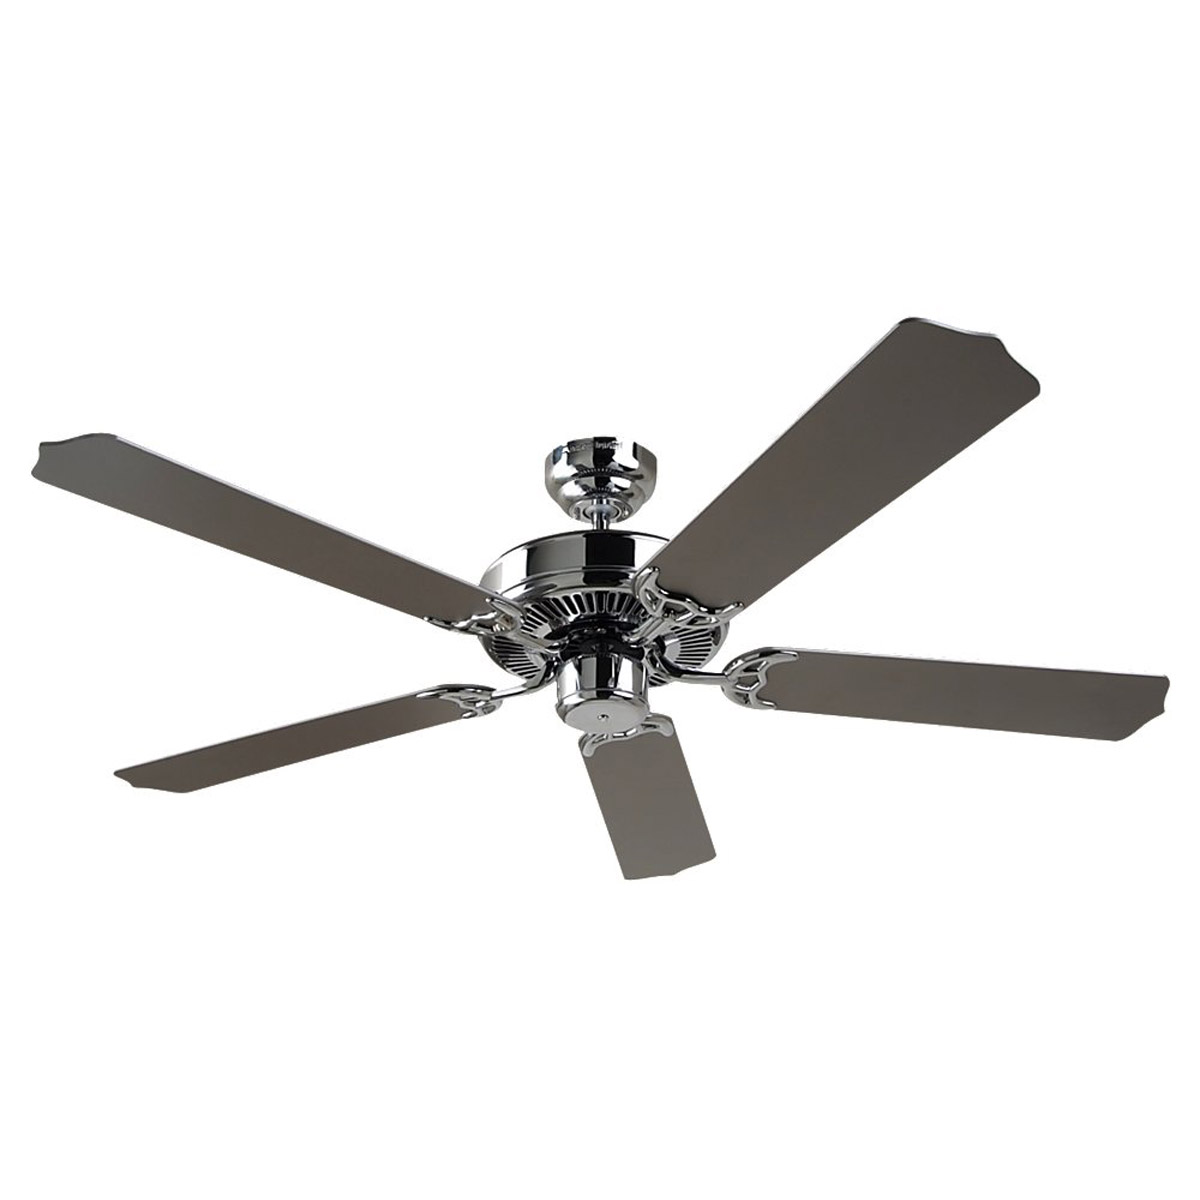 Sea Gull Lighting Quality Max & Energy Star 52in Ceiling Fan in Chrome 15030-05